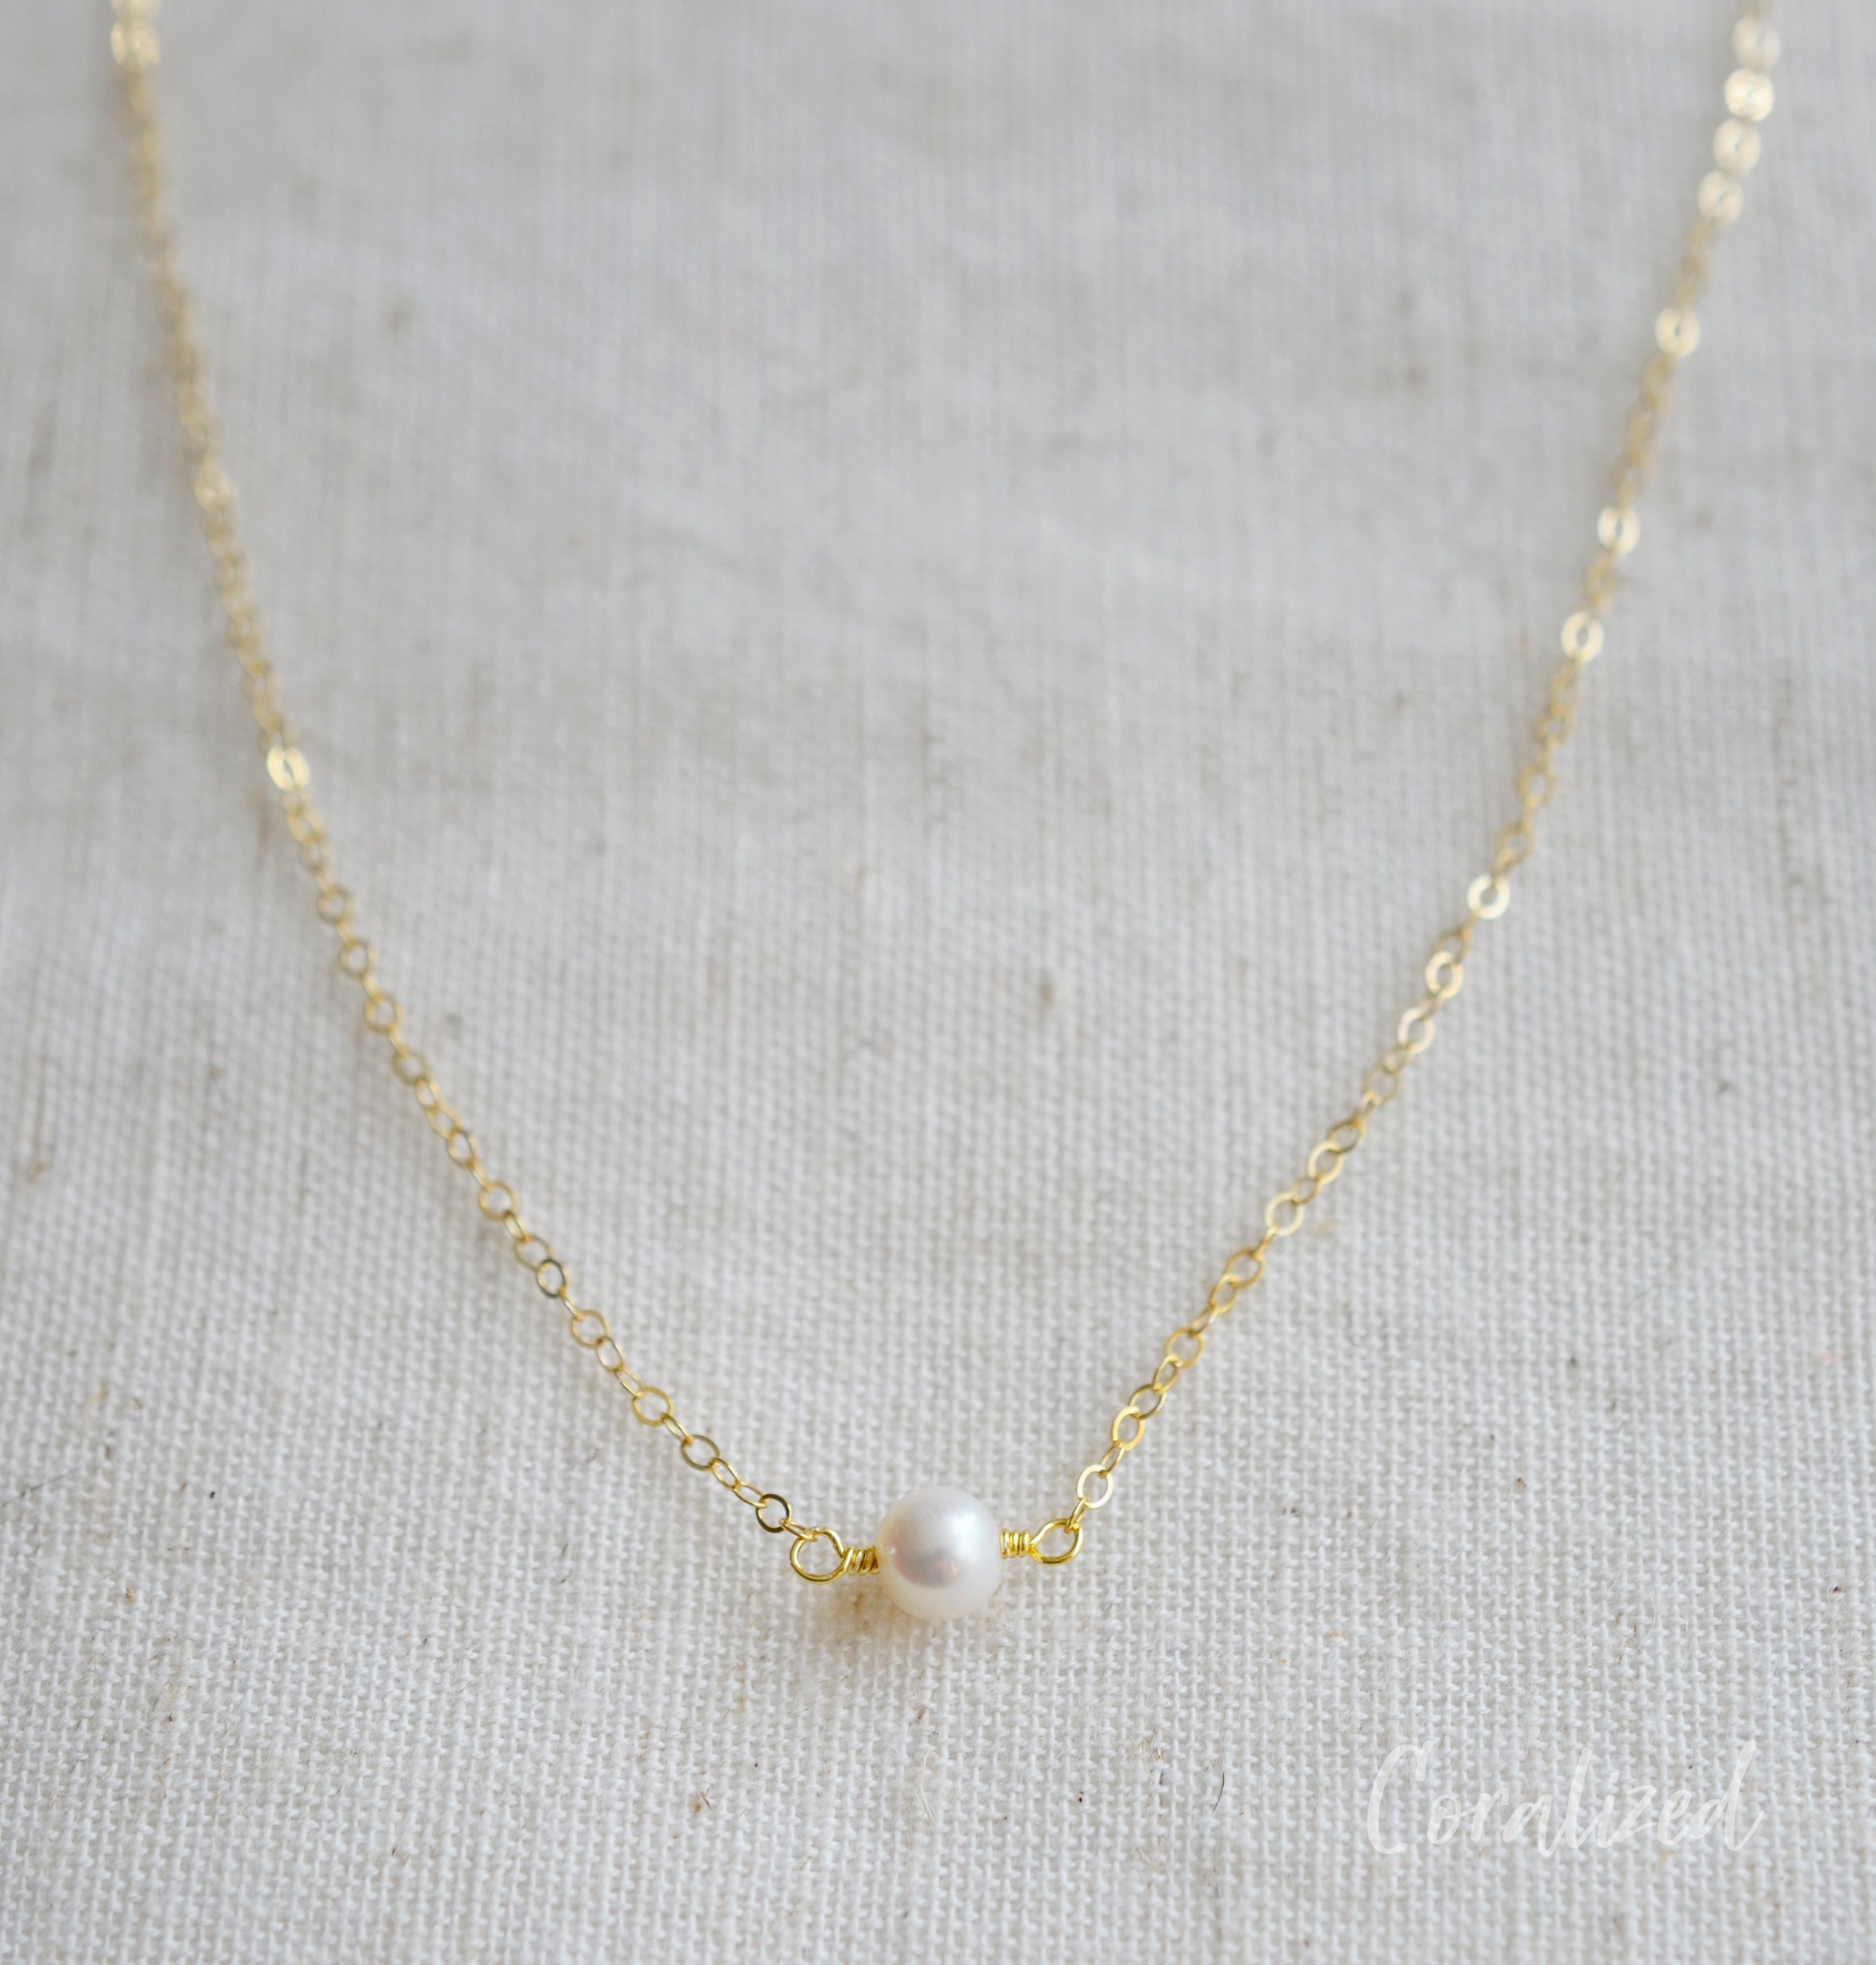 Small Round White Freshwater Pearl Necklace